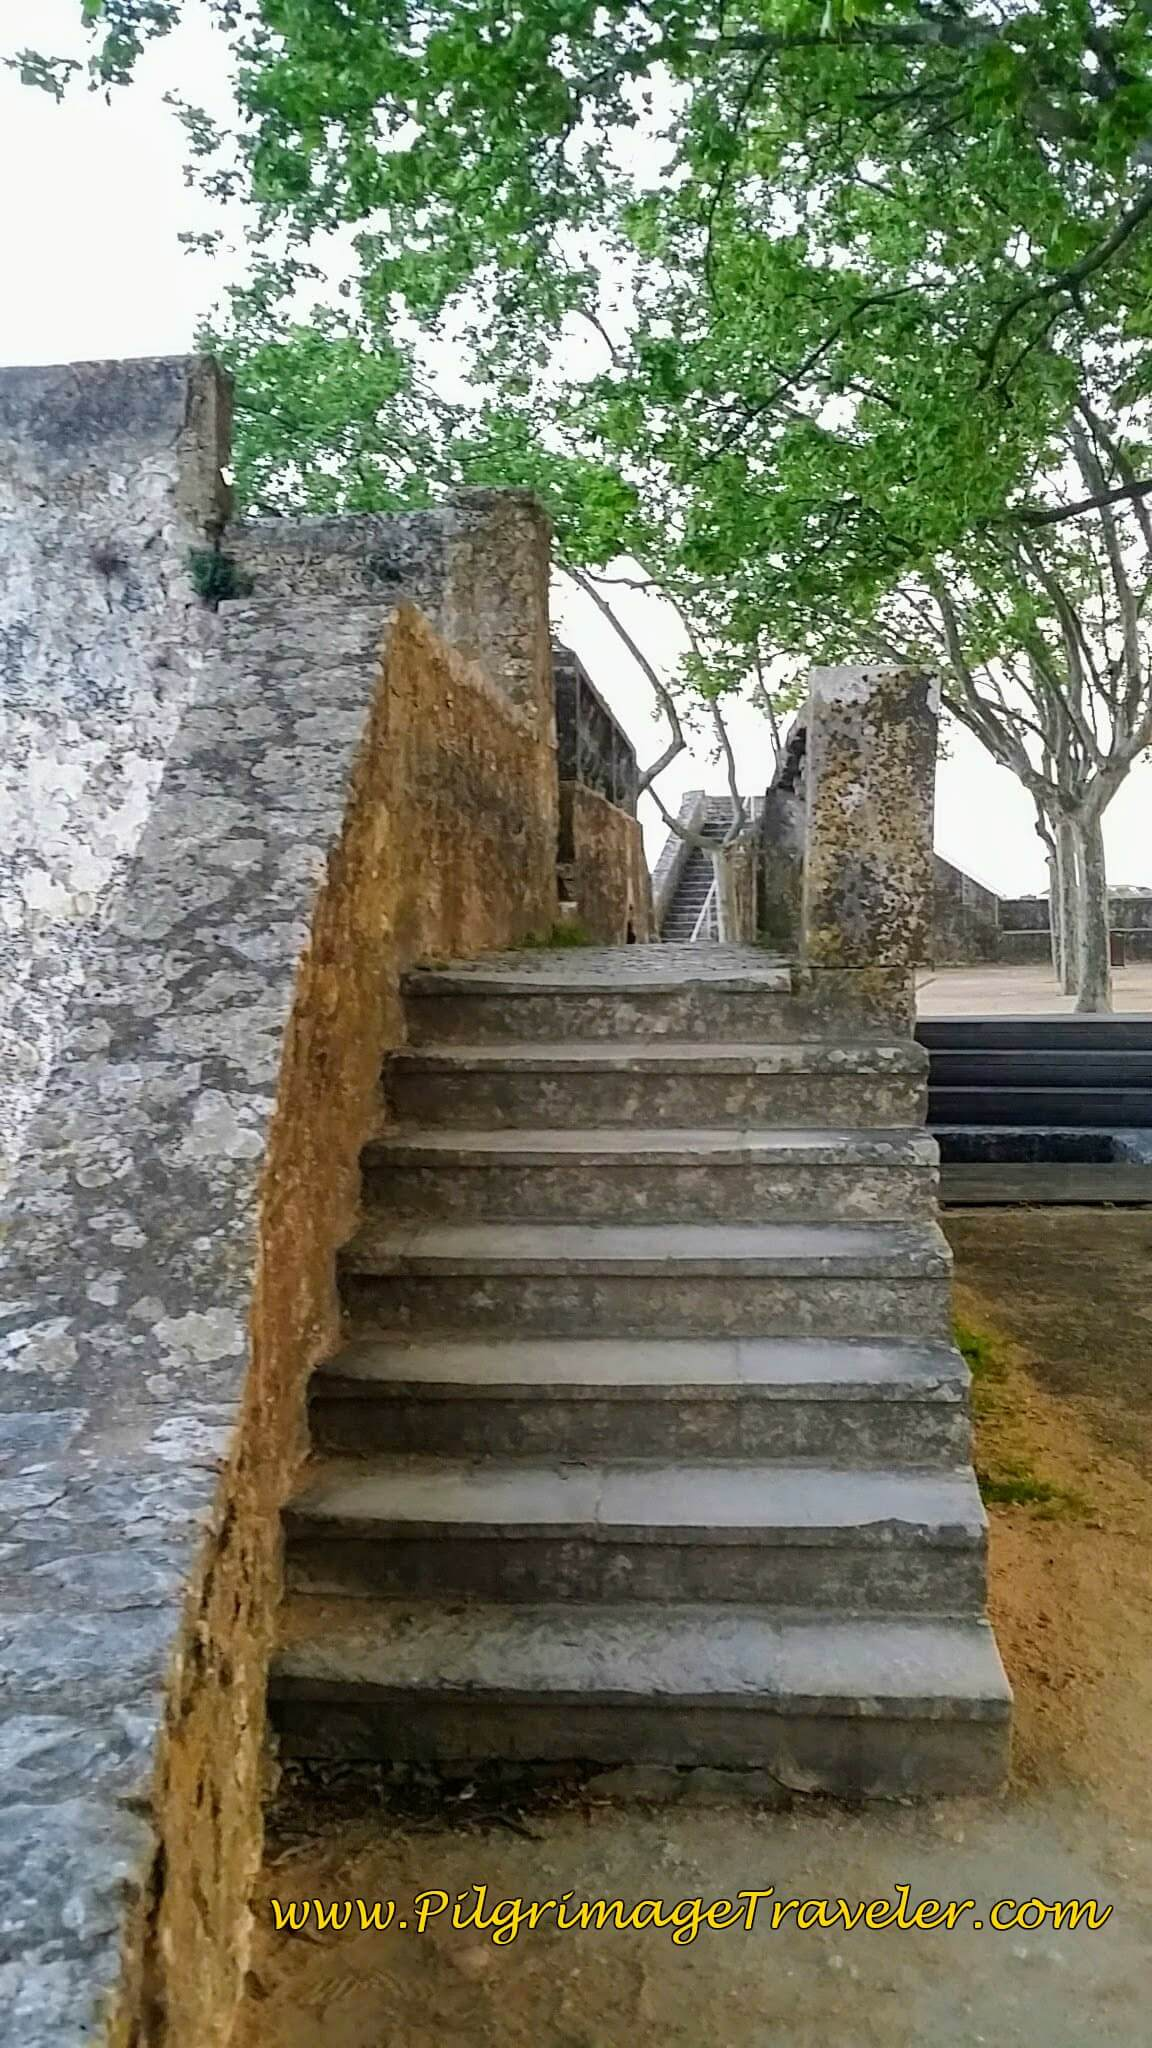 Stairs Leading to the Ramparts Overlooking the Tagus River